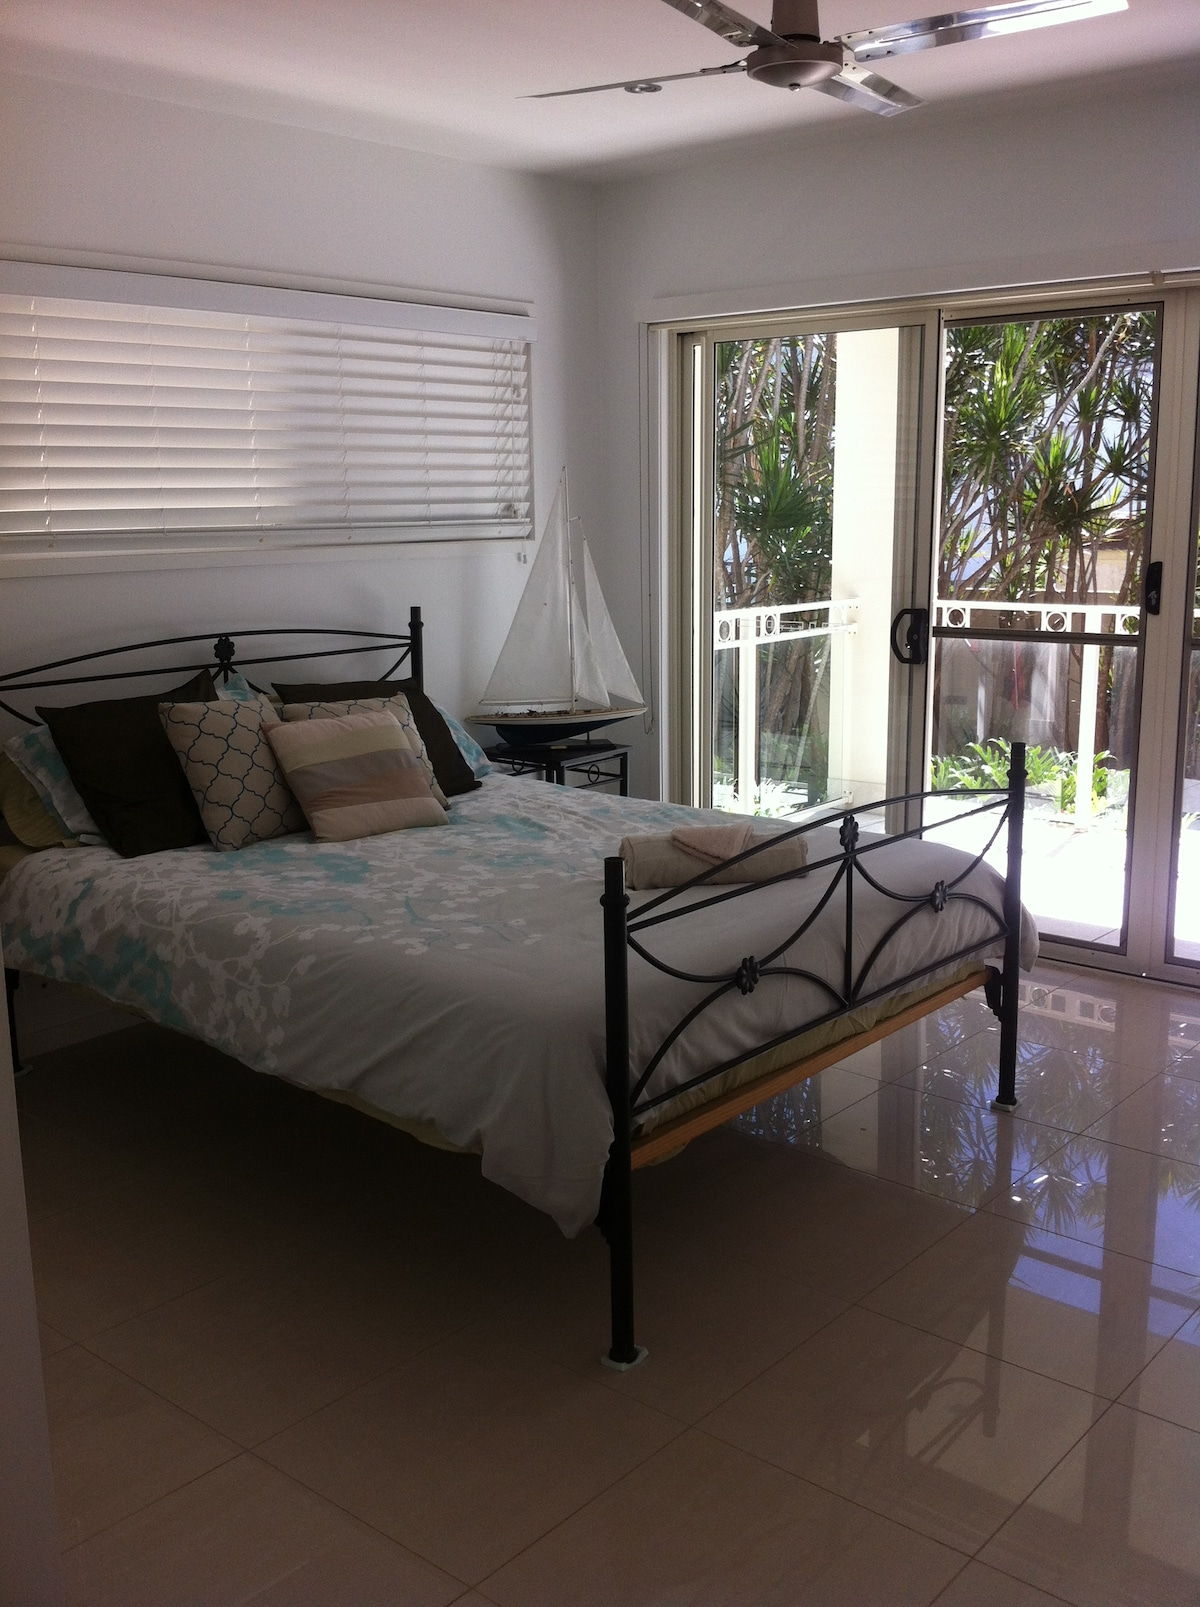 Twin Share Room with 1 Queen Bed, Private Entrance & Balcony.